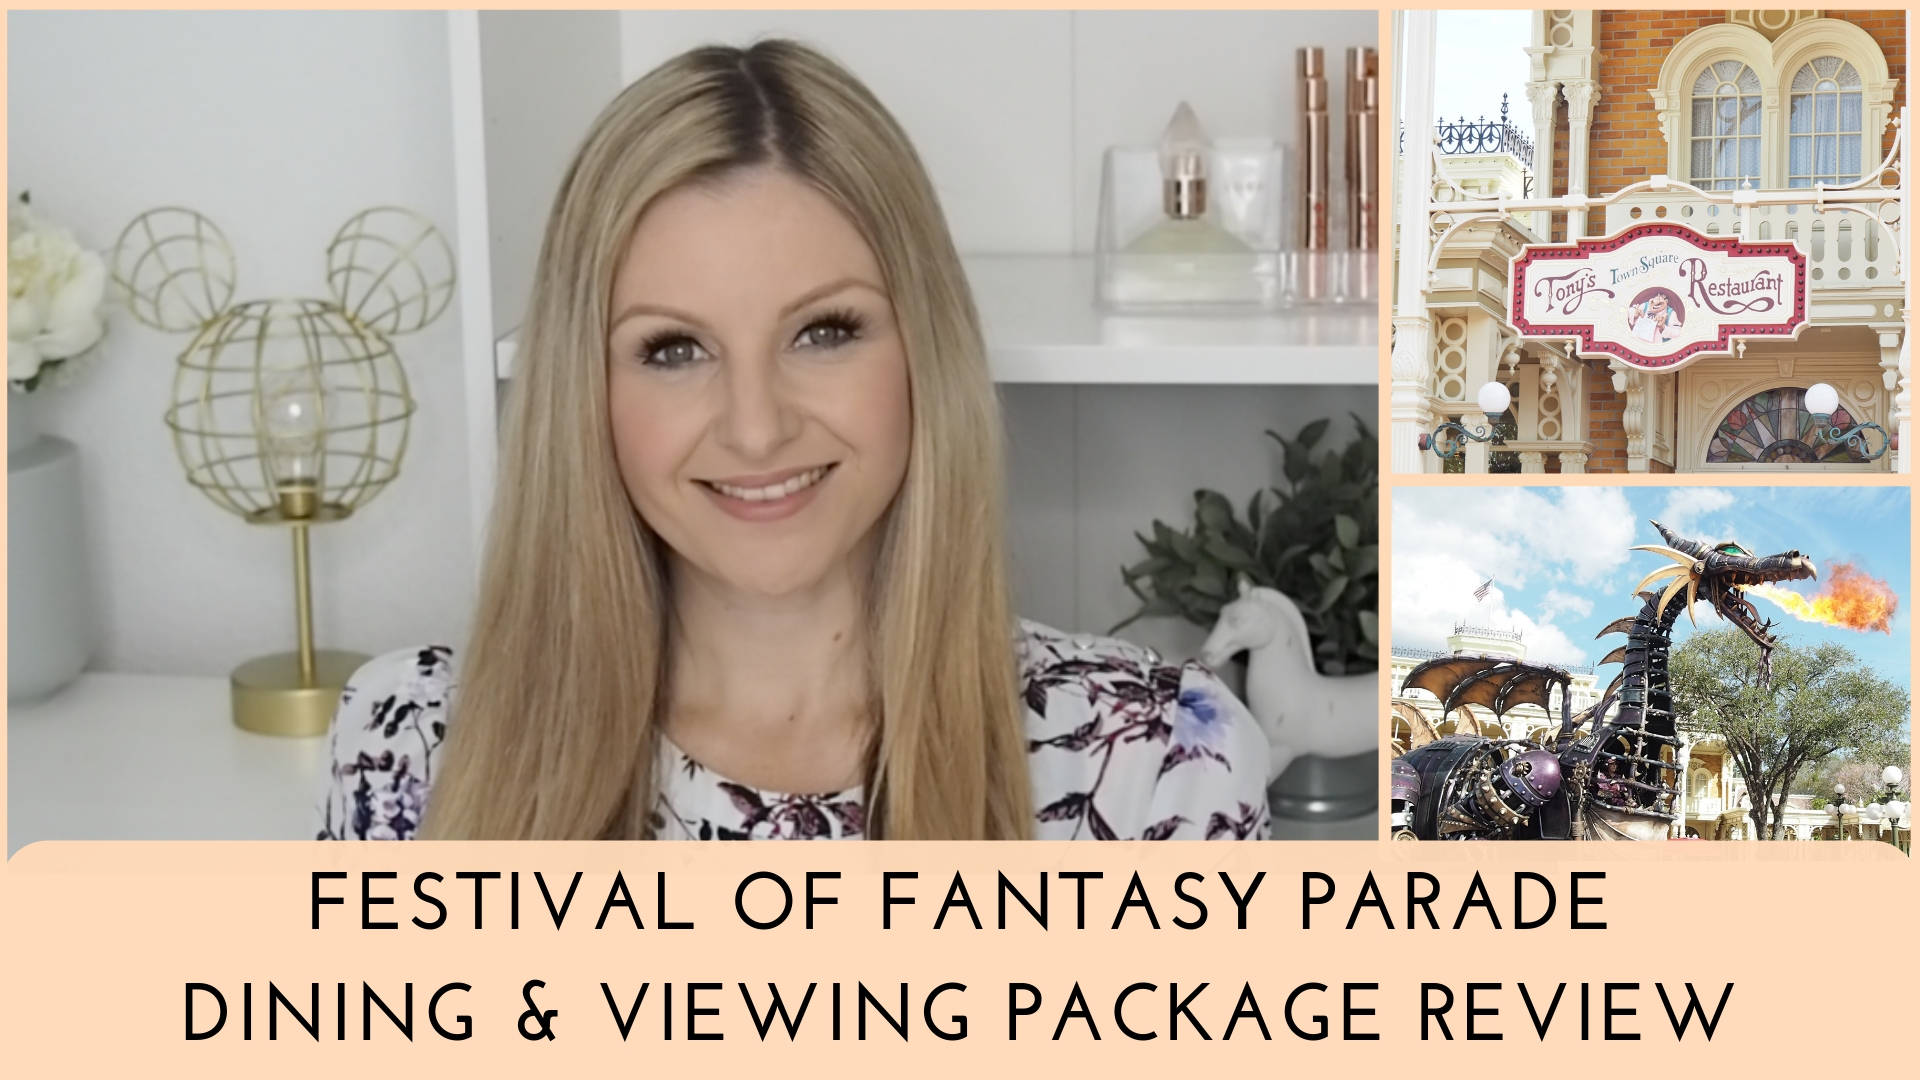 Festival of Fantasy Parade Dining Package